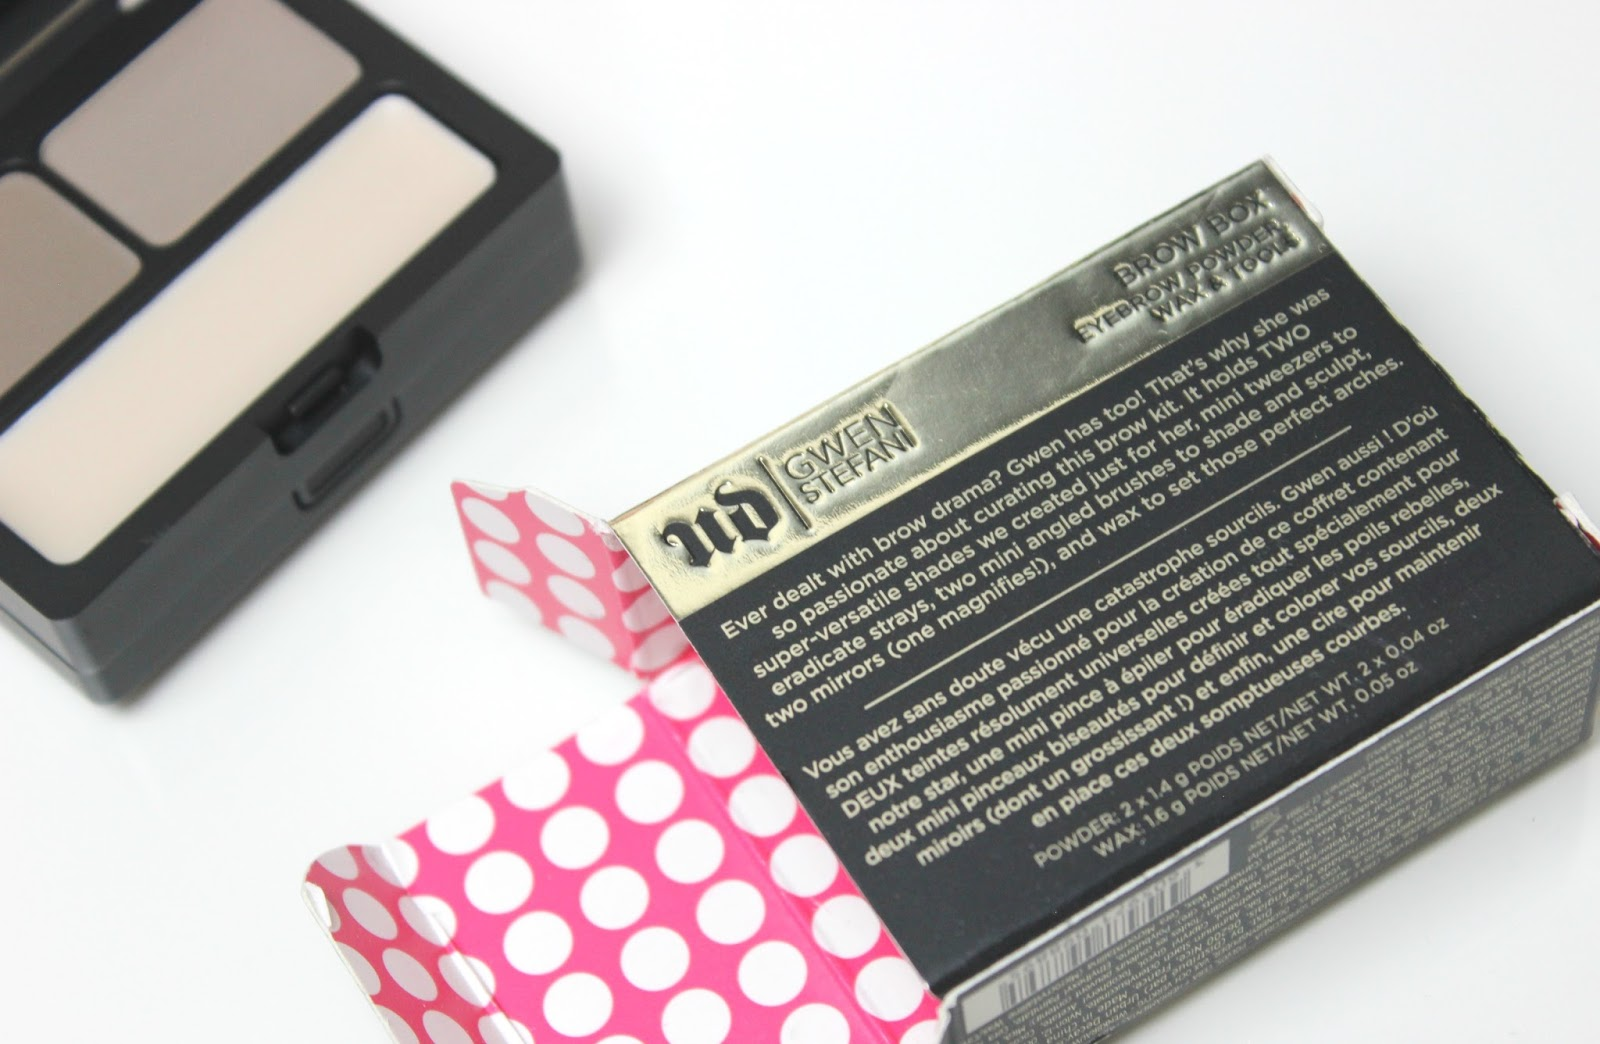 Gwen Stefani Brow Box | Tattooed Tealady